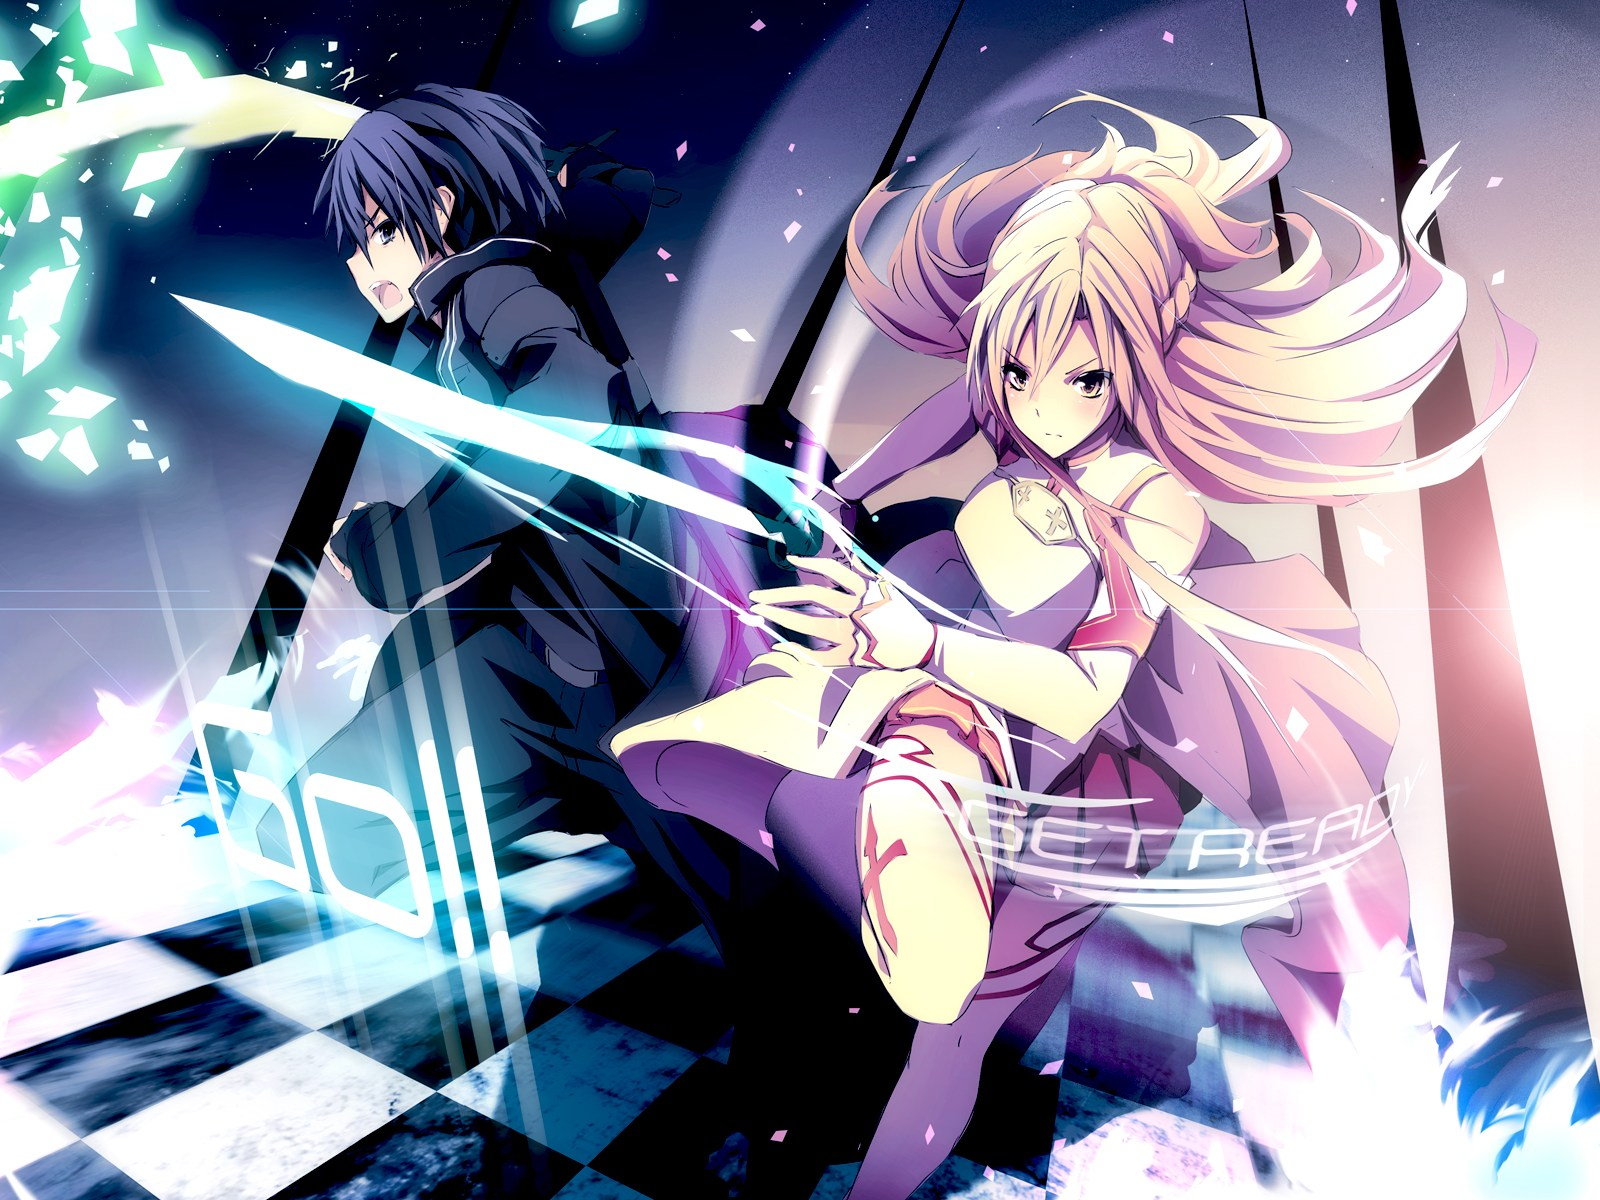 Sword art online wallpaper and background image - Anime 1600x1200 ...